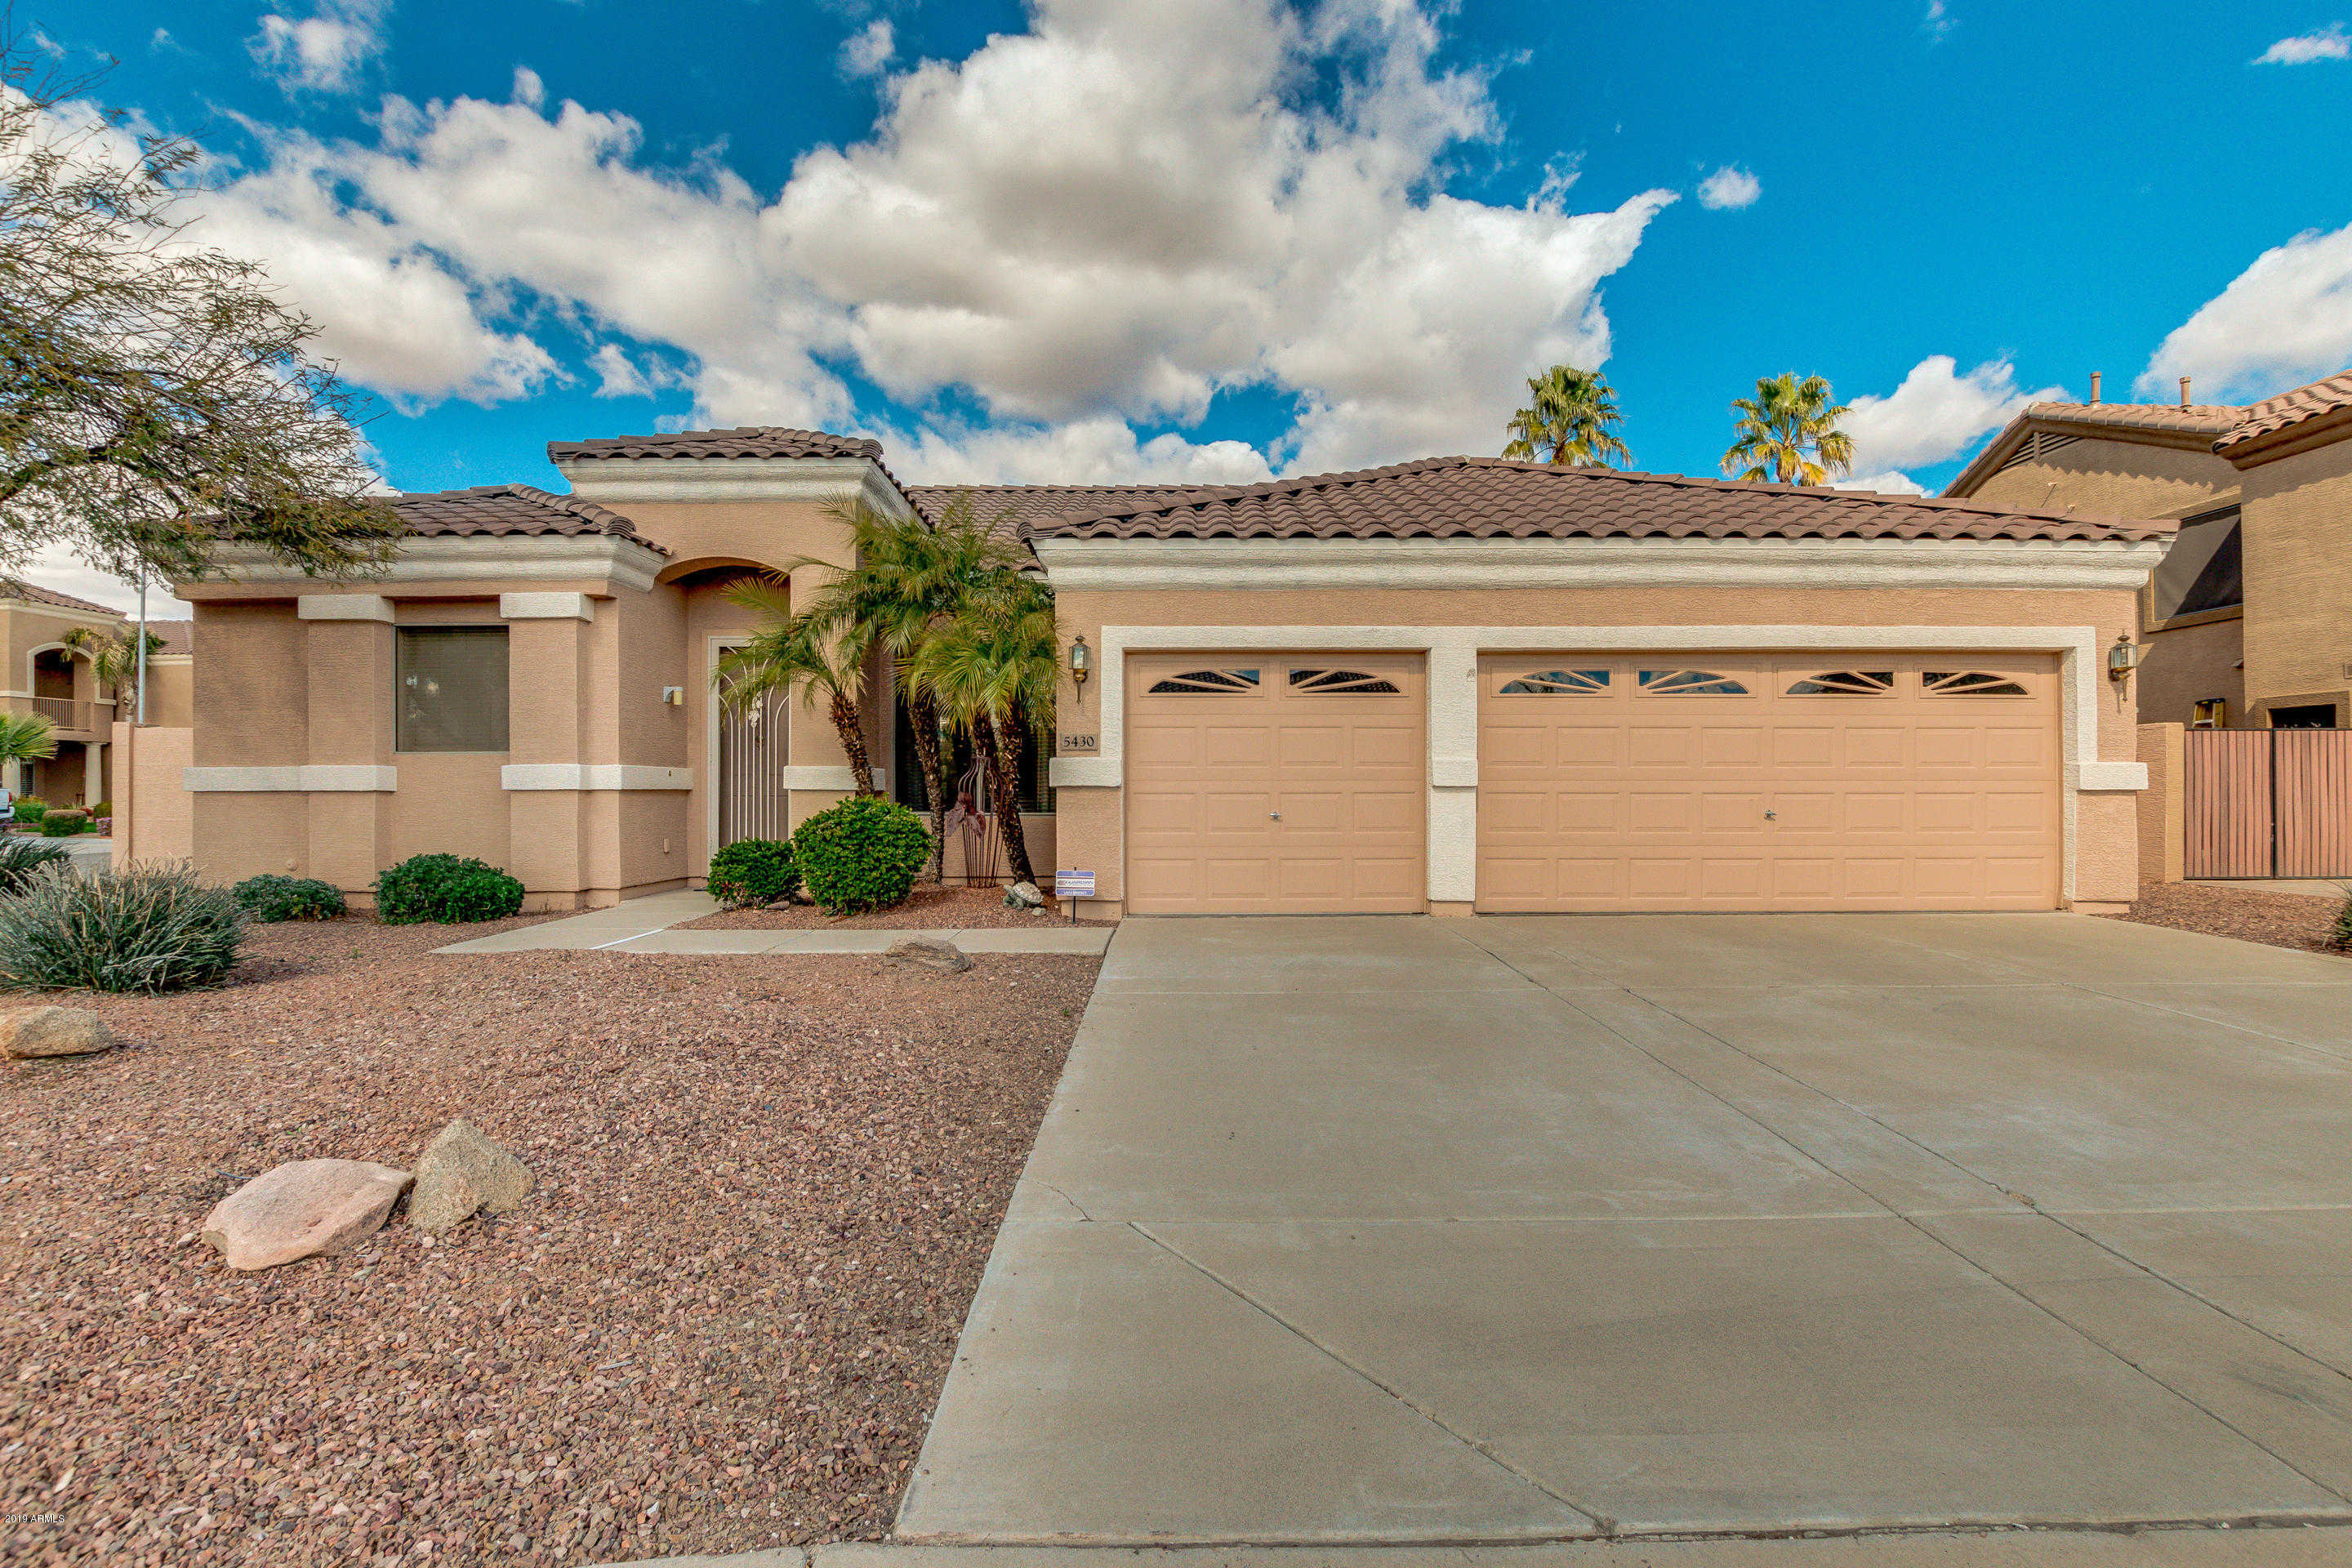 $349,900 - 3Br/2Ba - Home for Sale in Touchstone 2, Glendale